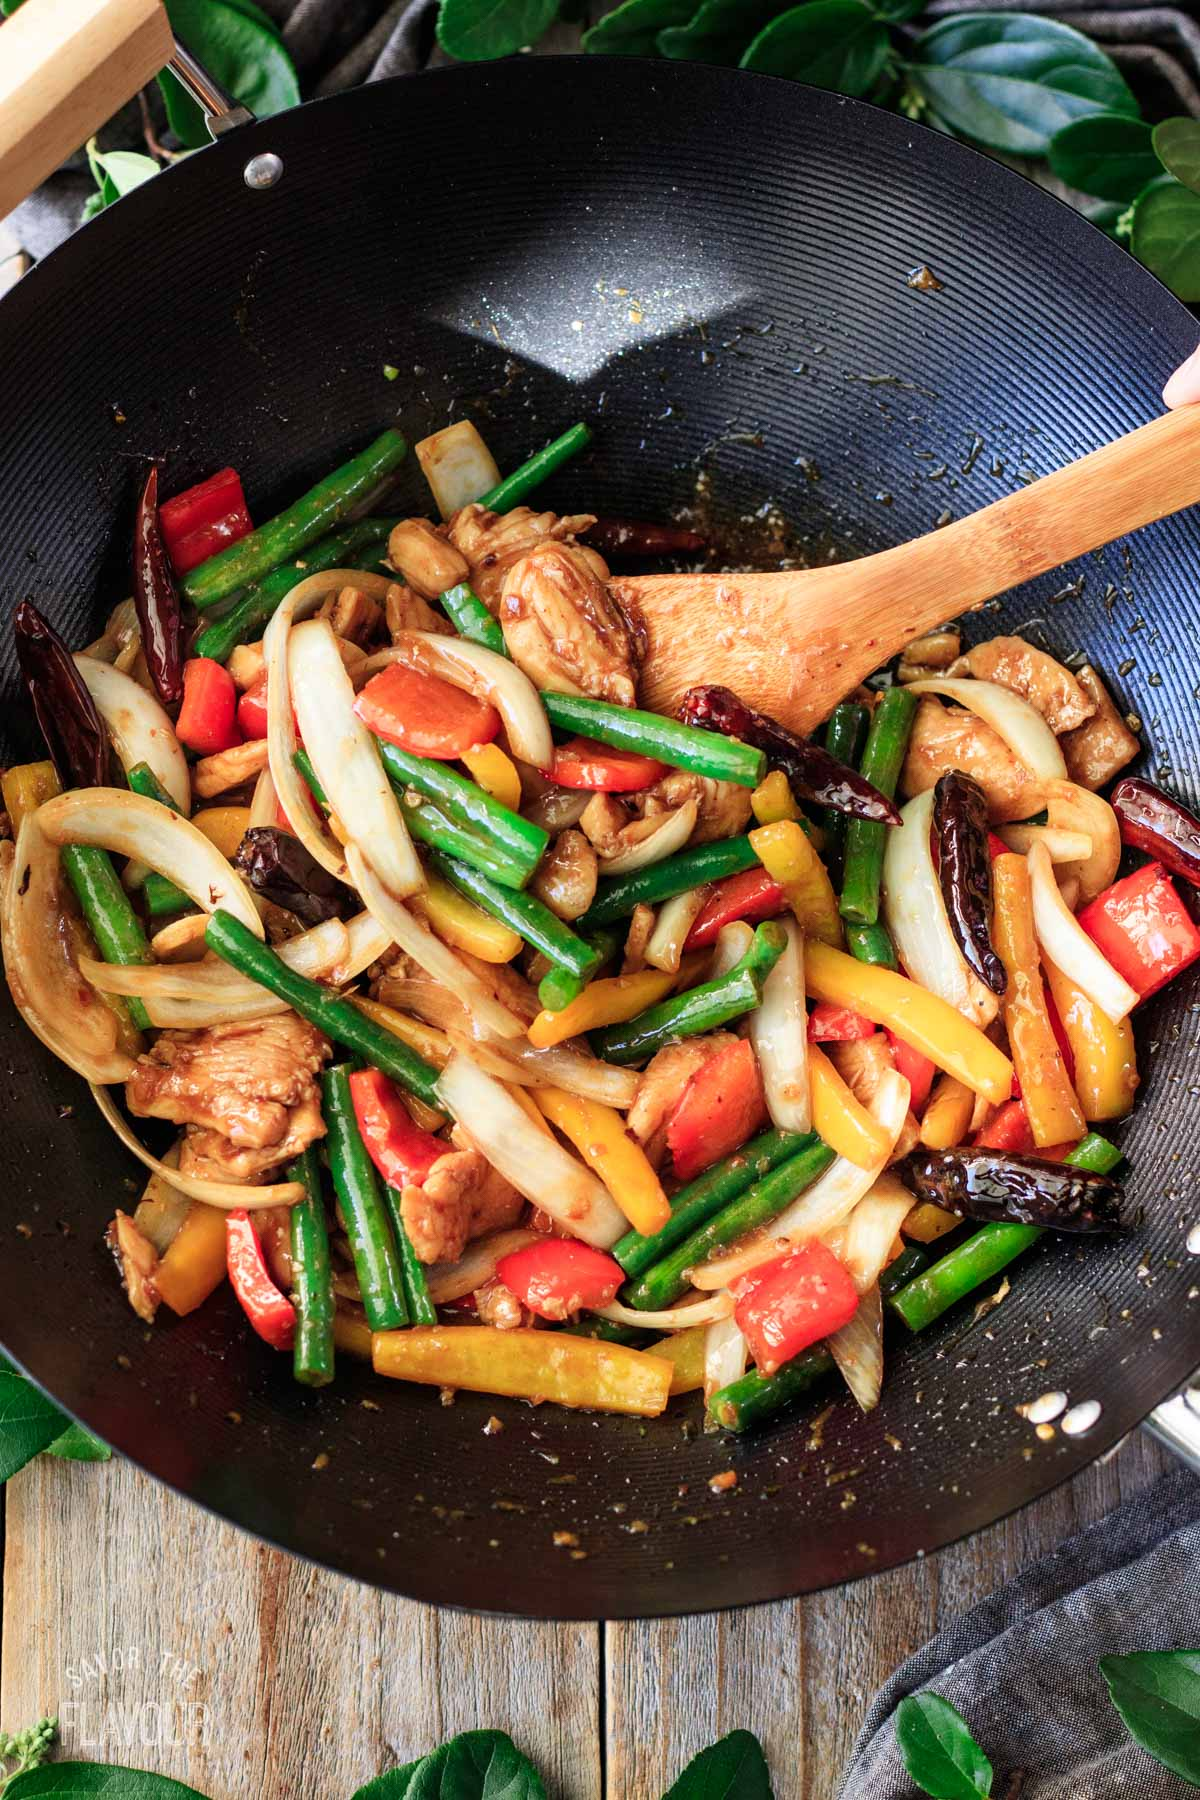 person mixing the cooked chicken, veggies, and sauce together in a wok